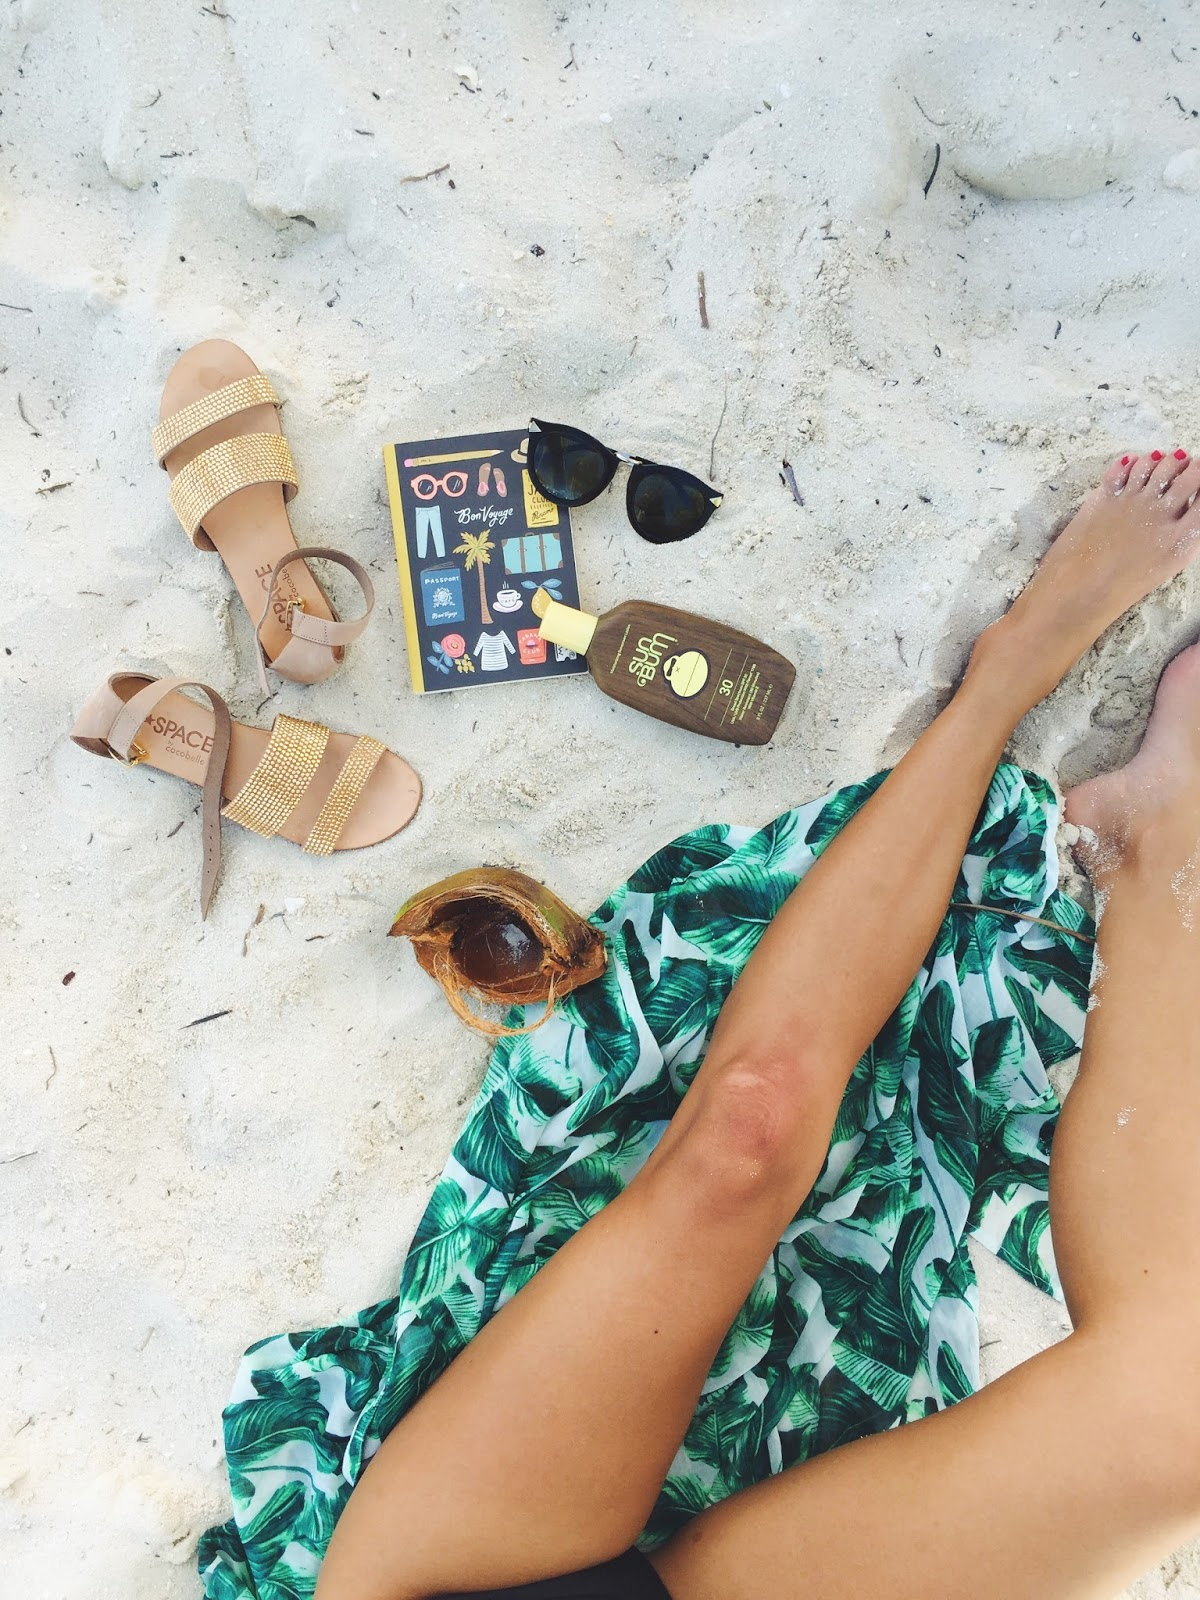 l space sandals bikini, caribbean cruise vacation, pursuit of shoes, ashley torres